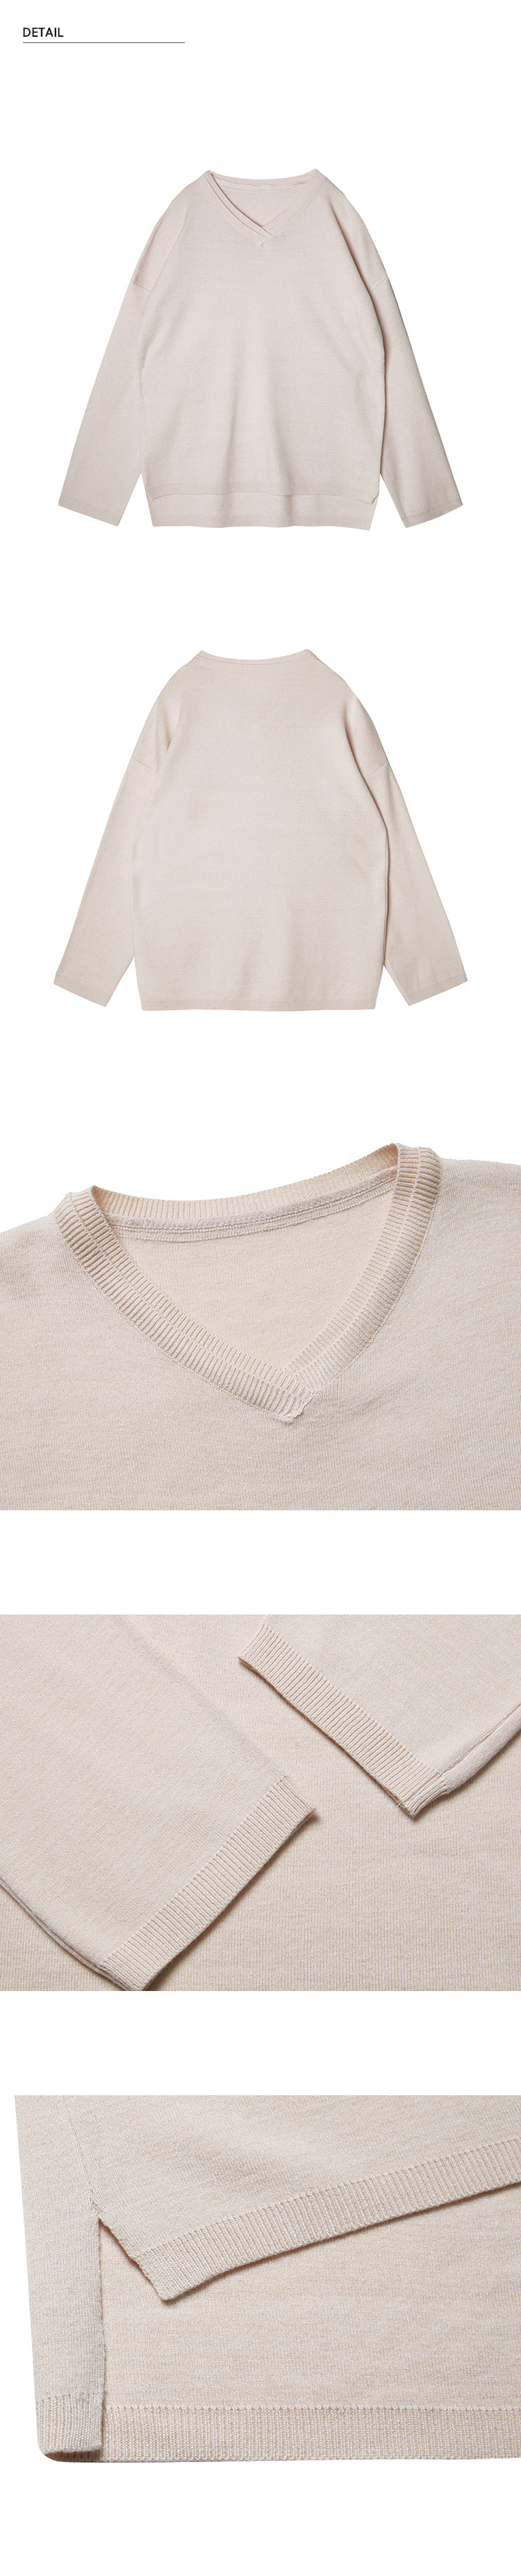 몬츠(MONTS) 863 double ribbed V-neck knit (light beige)